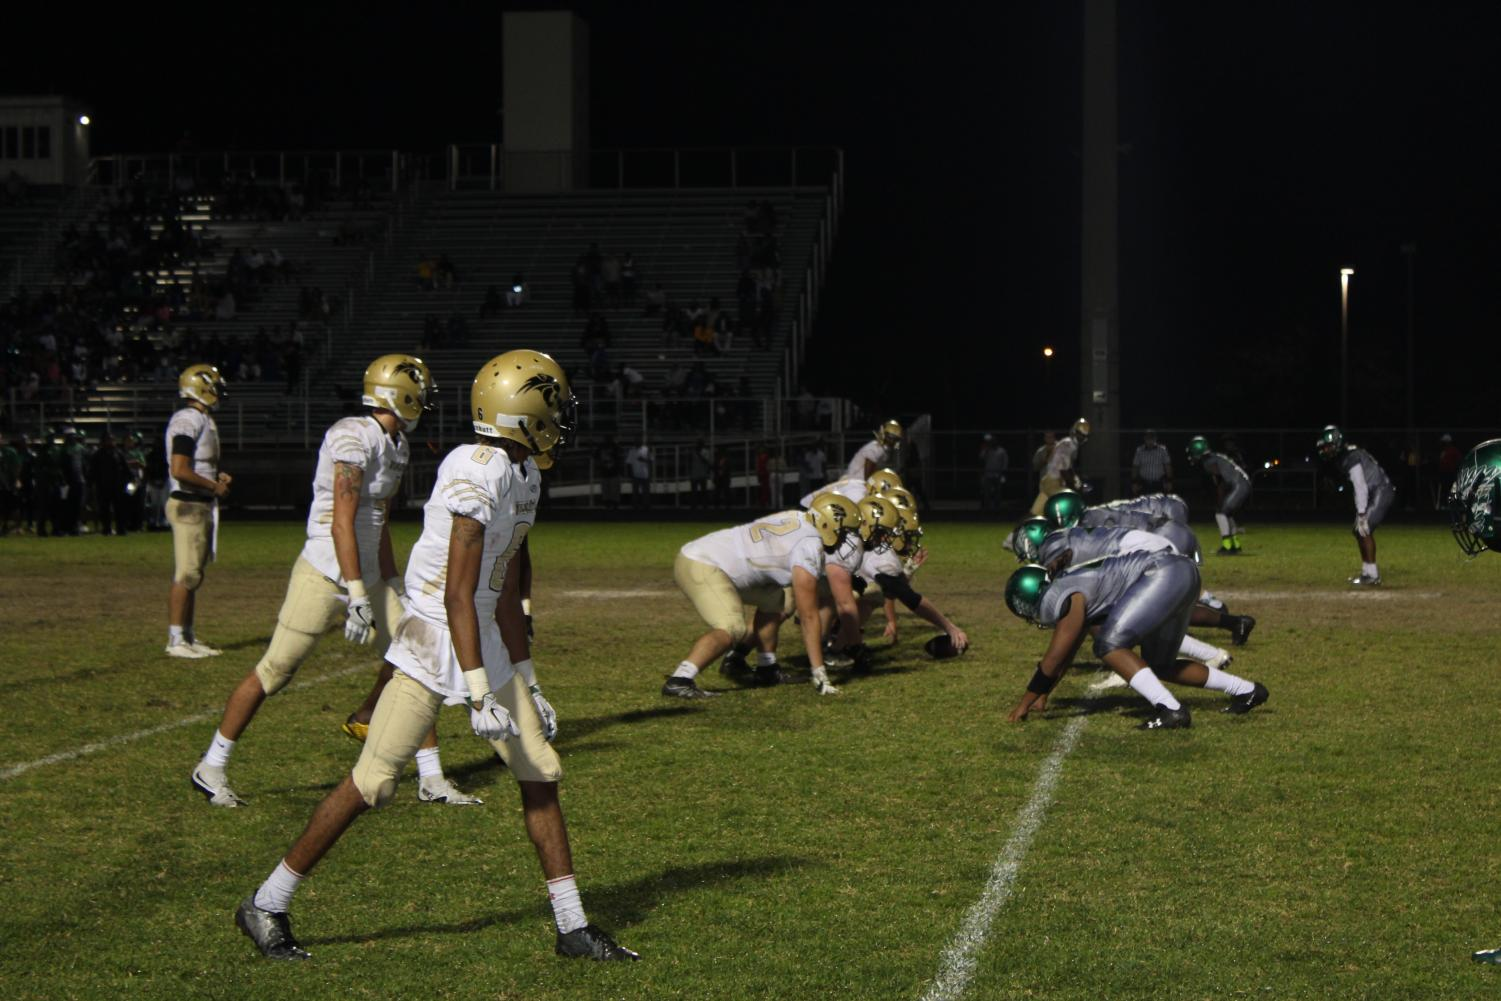 Wildcats drive down the field during the Atlantic playoff game on Nov. 24.